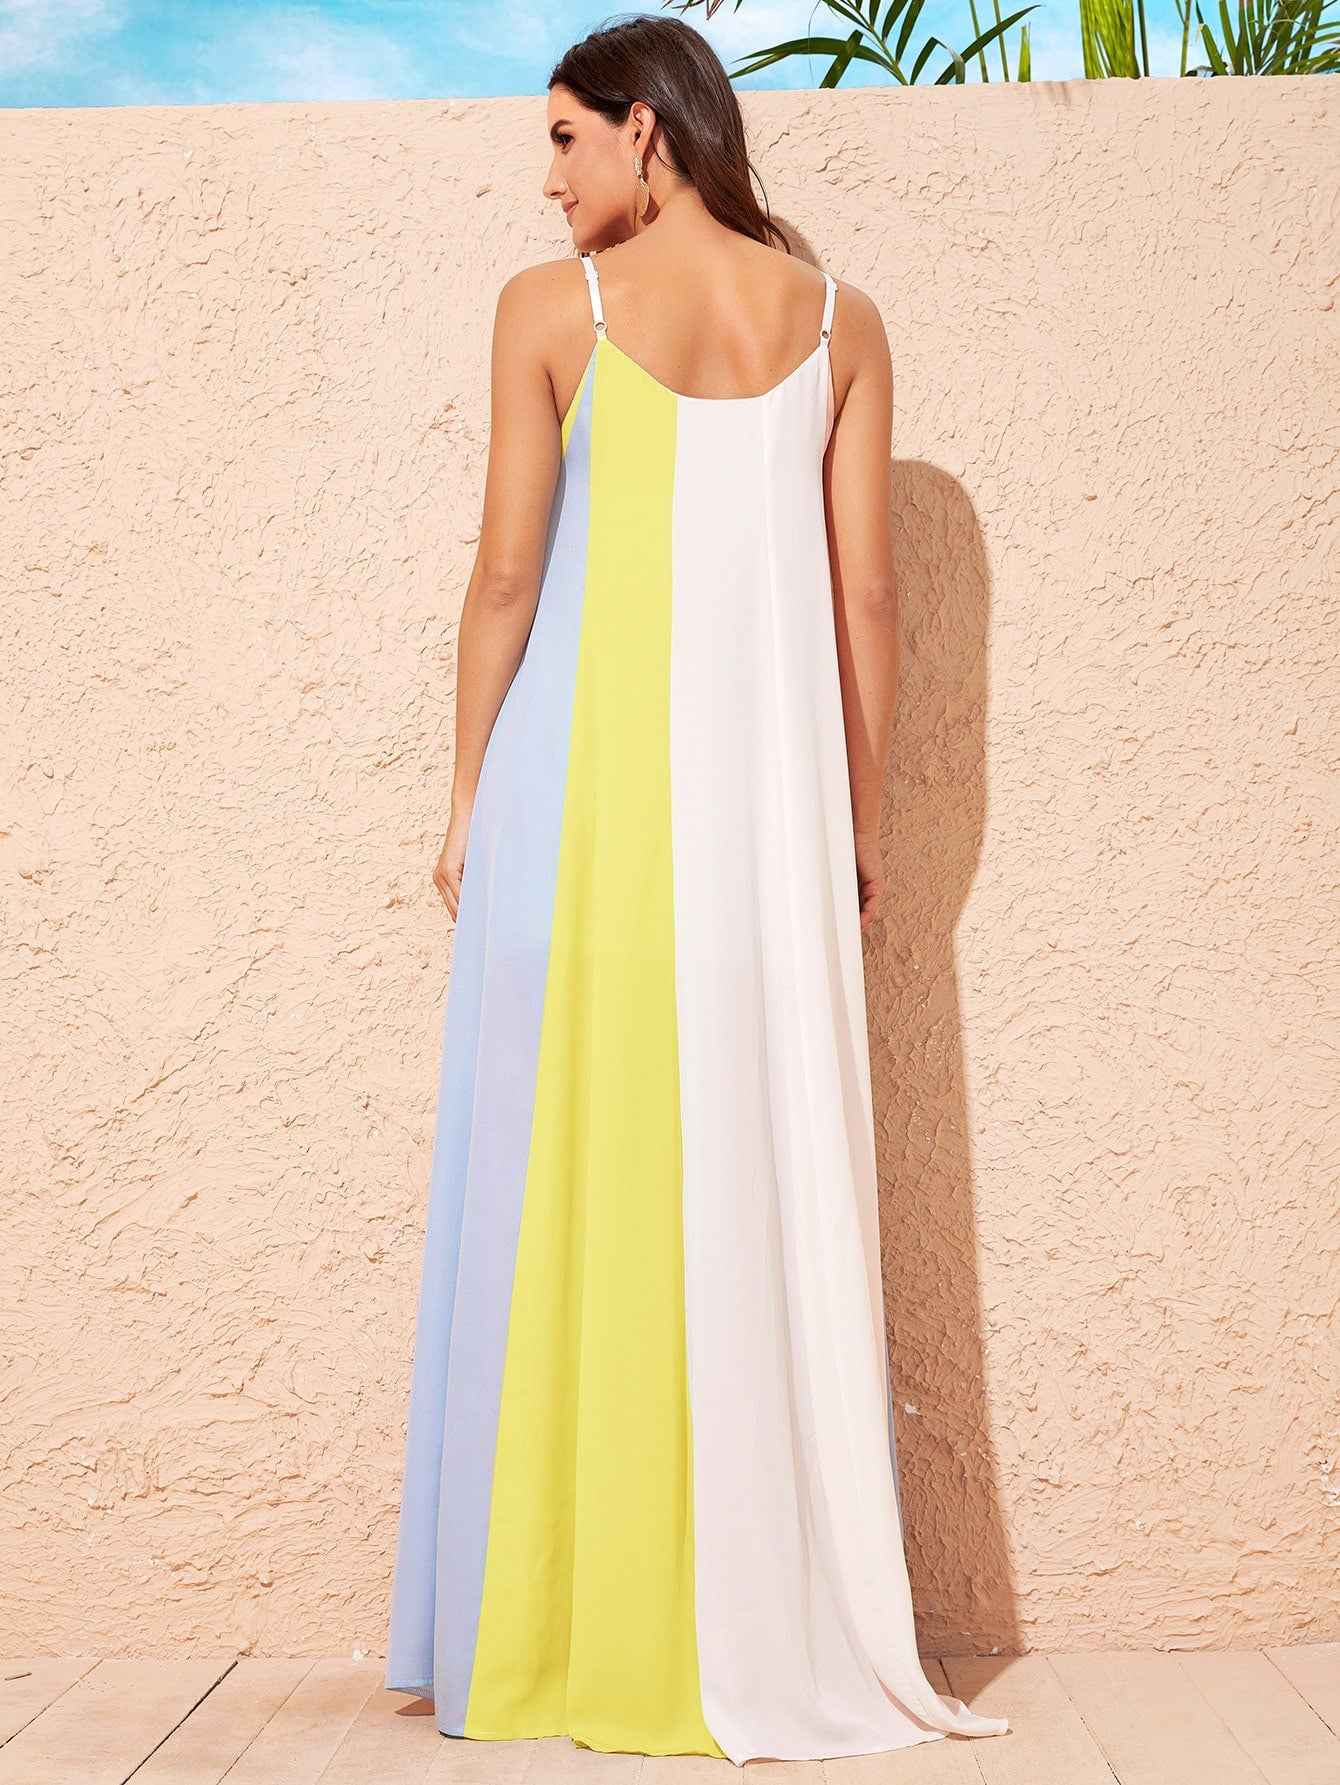 Cut And Sew Chiffon Maxi Cami Dress